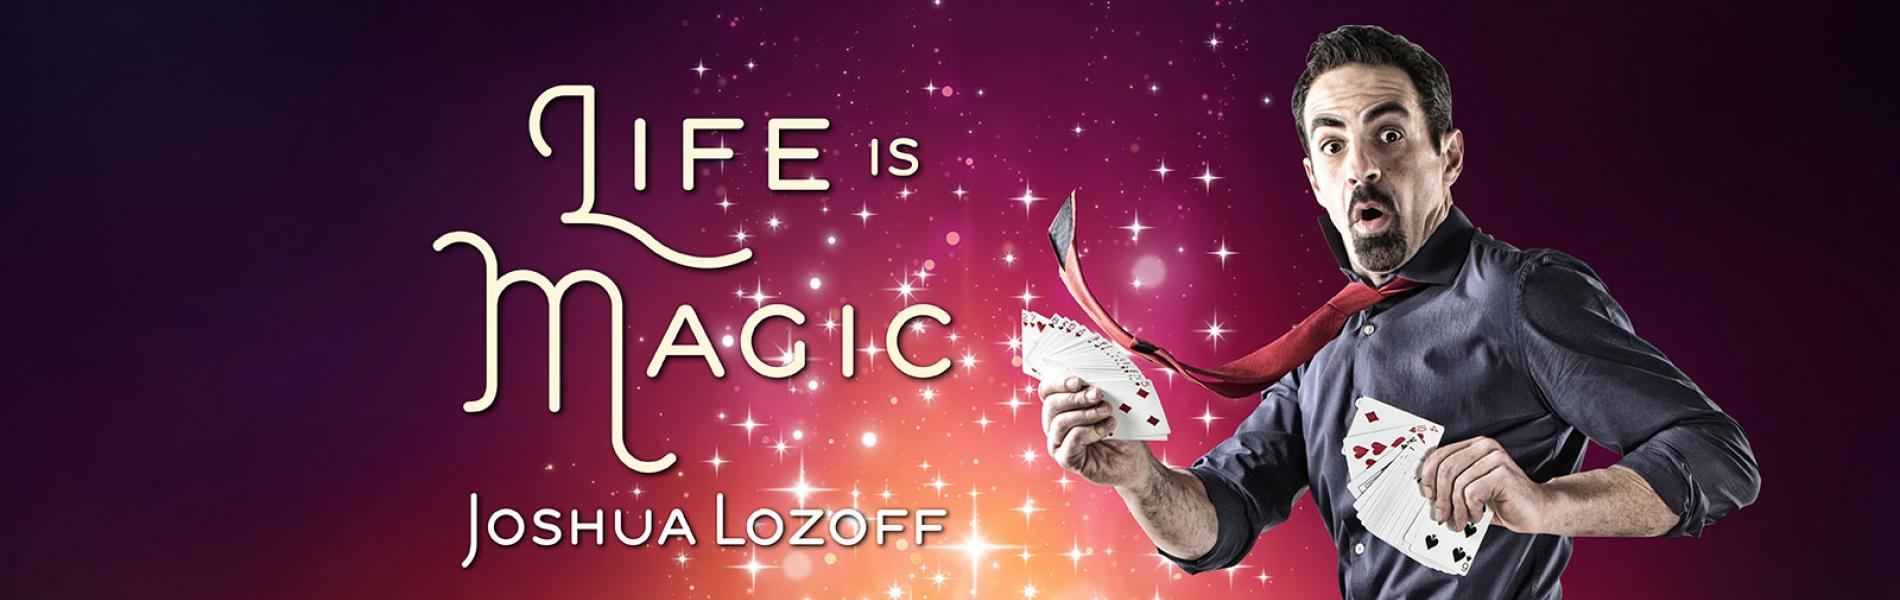 Life is Magic!